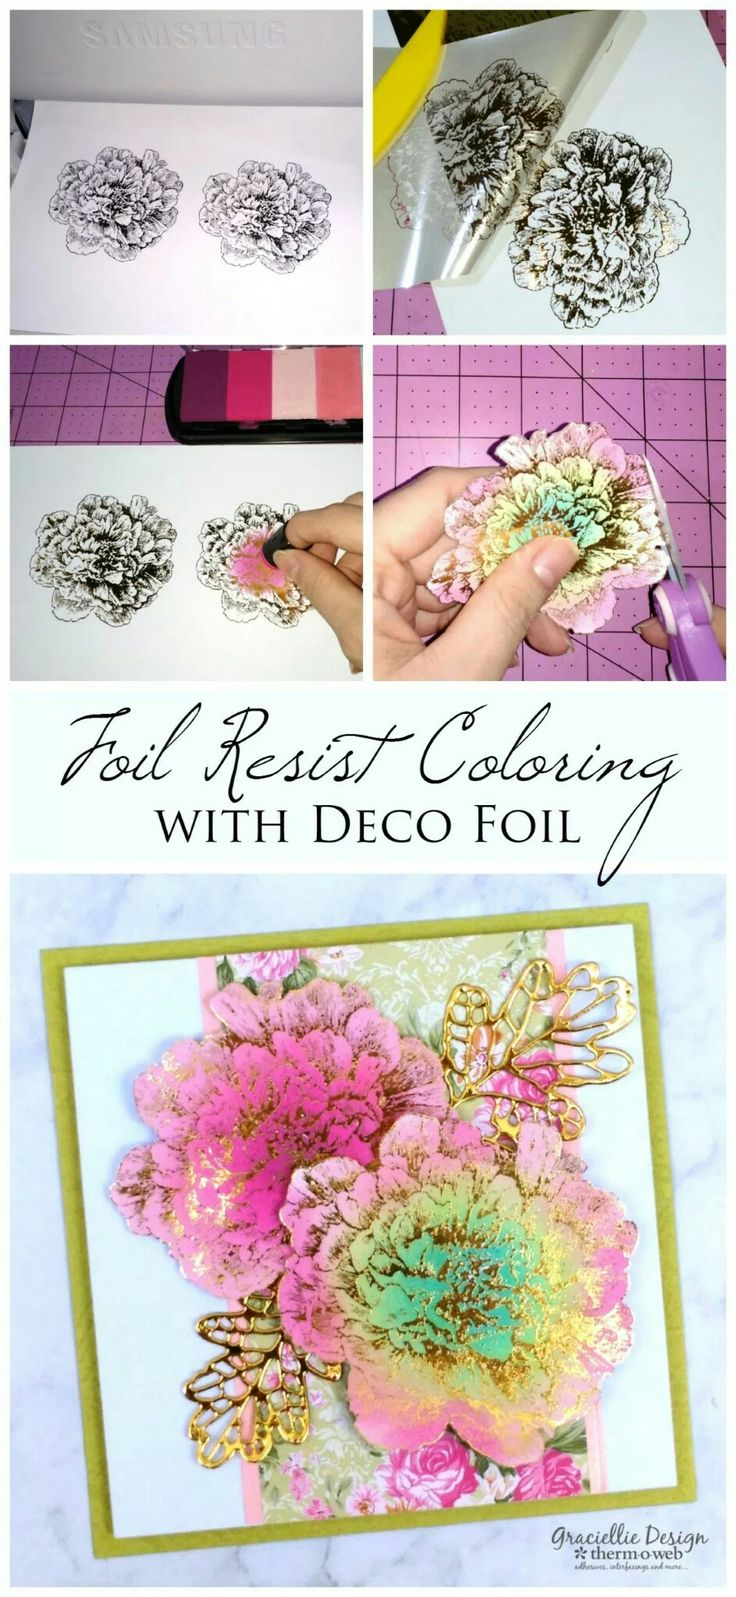 DIY Foil Resist Coloring with Deco Foil and Pigment Inks. Step by step tutorial.